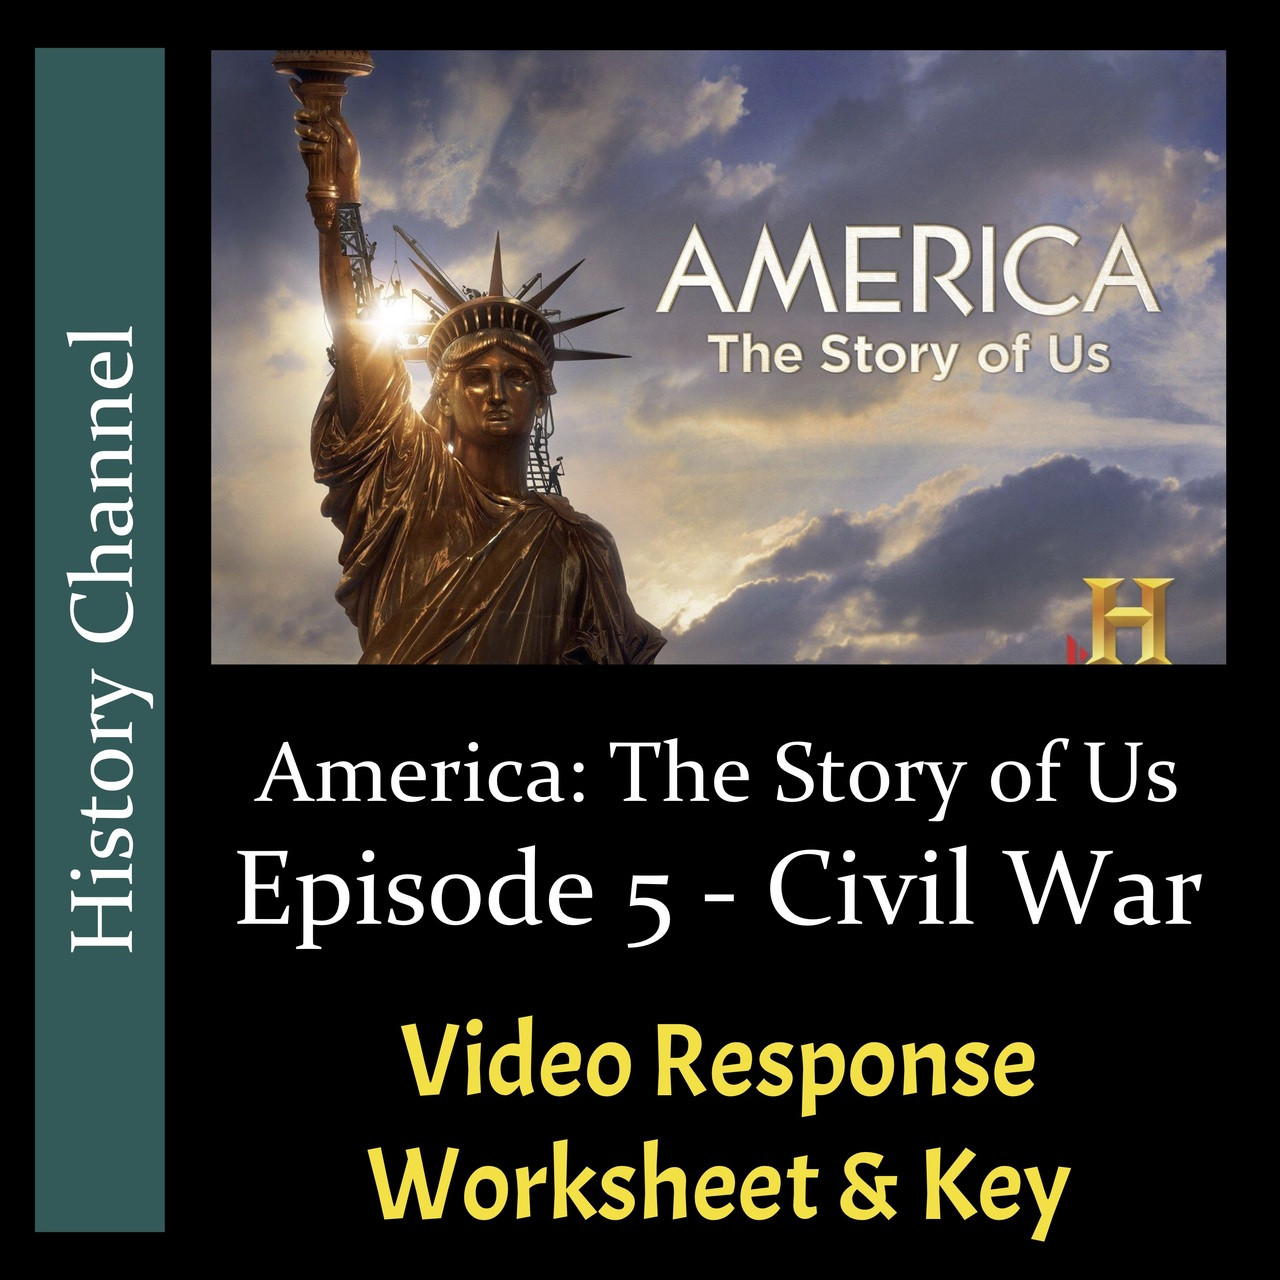 medium resolution of America The Story of Us - Episode 05: Civil War - Video Response Worksheet  \u0026 Key (Editable) - Amped Up Learning